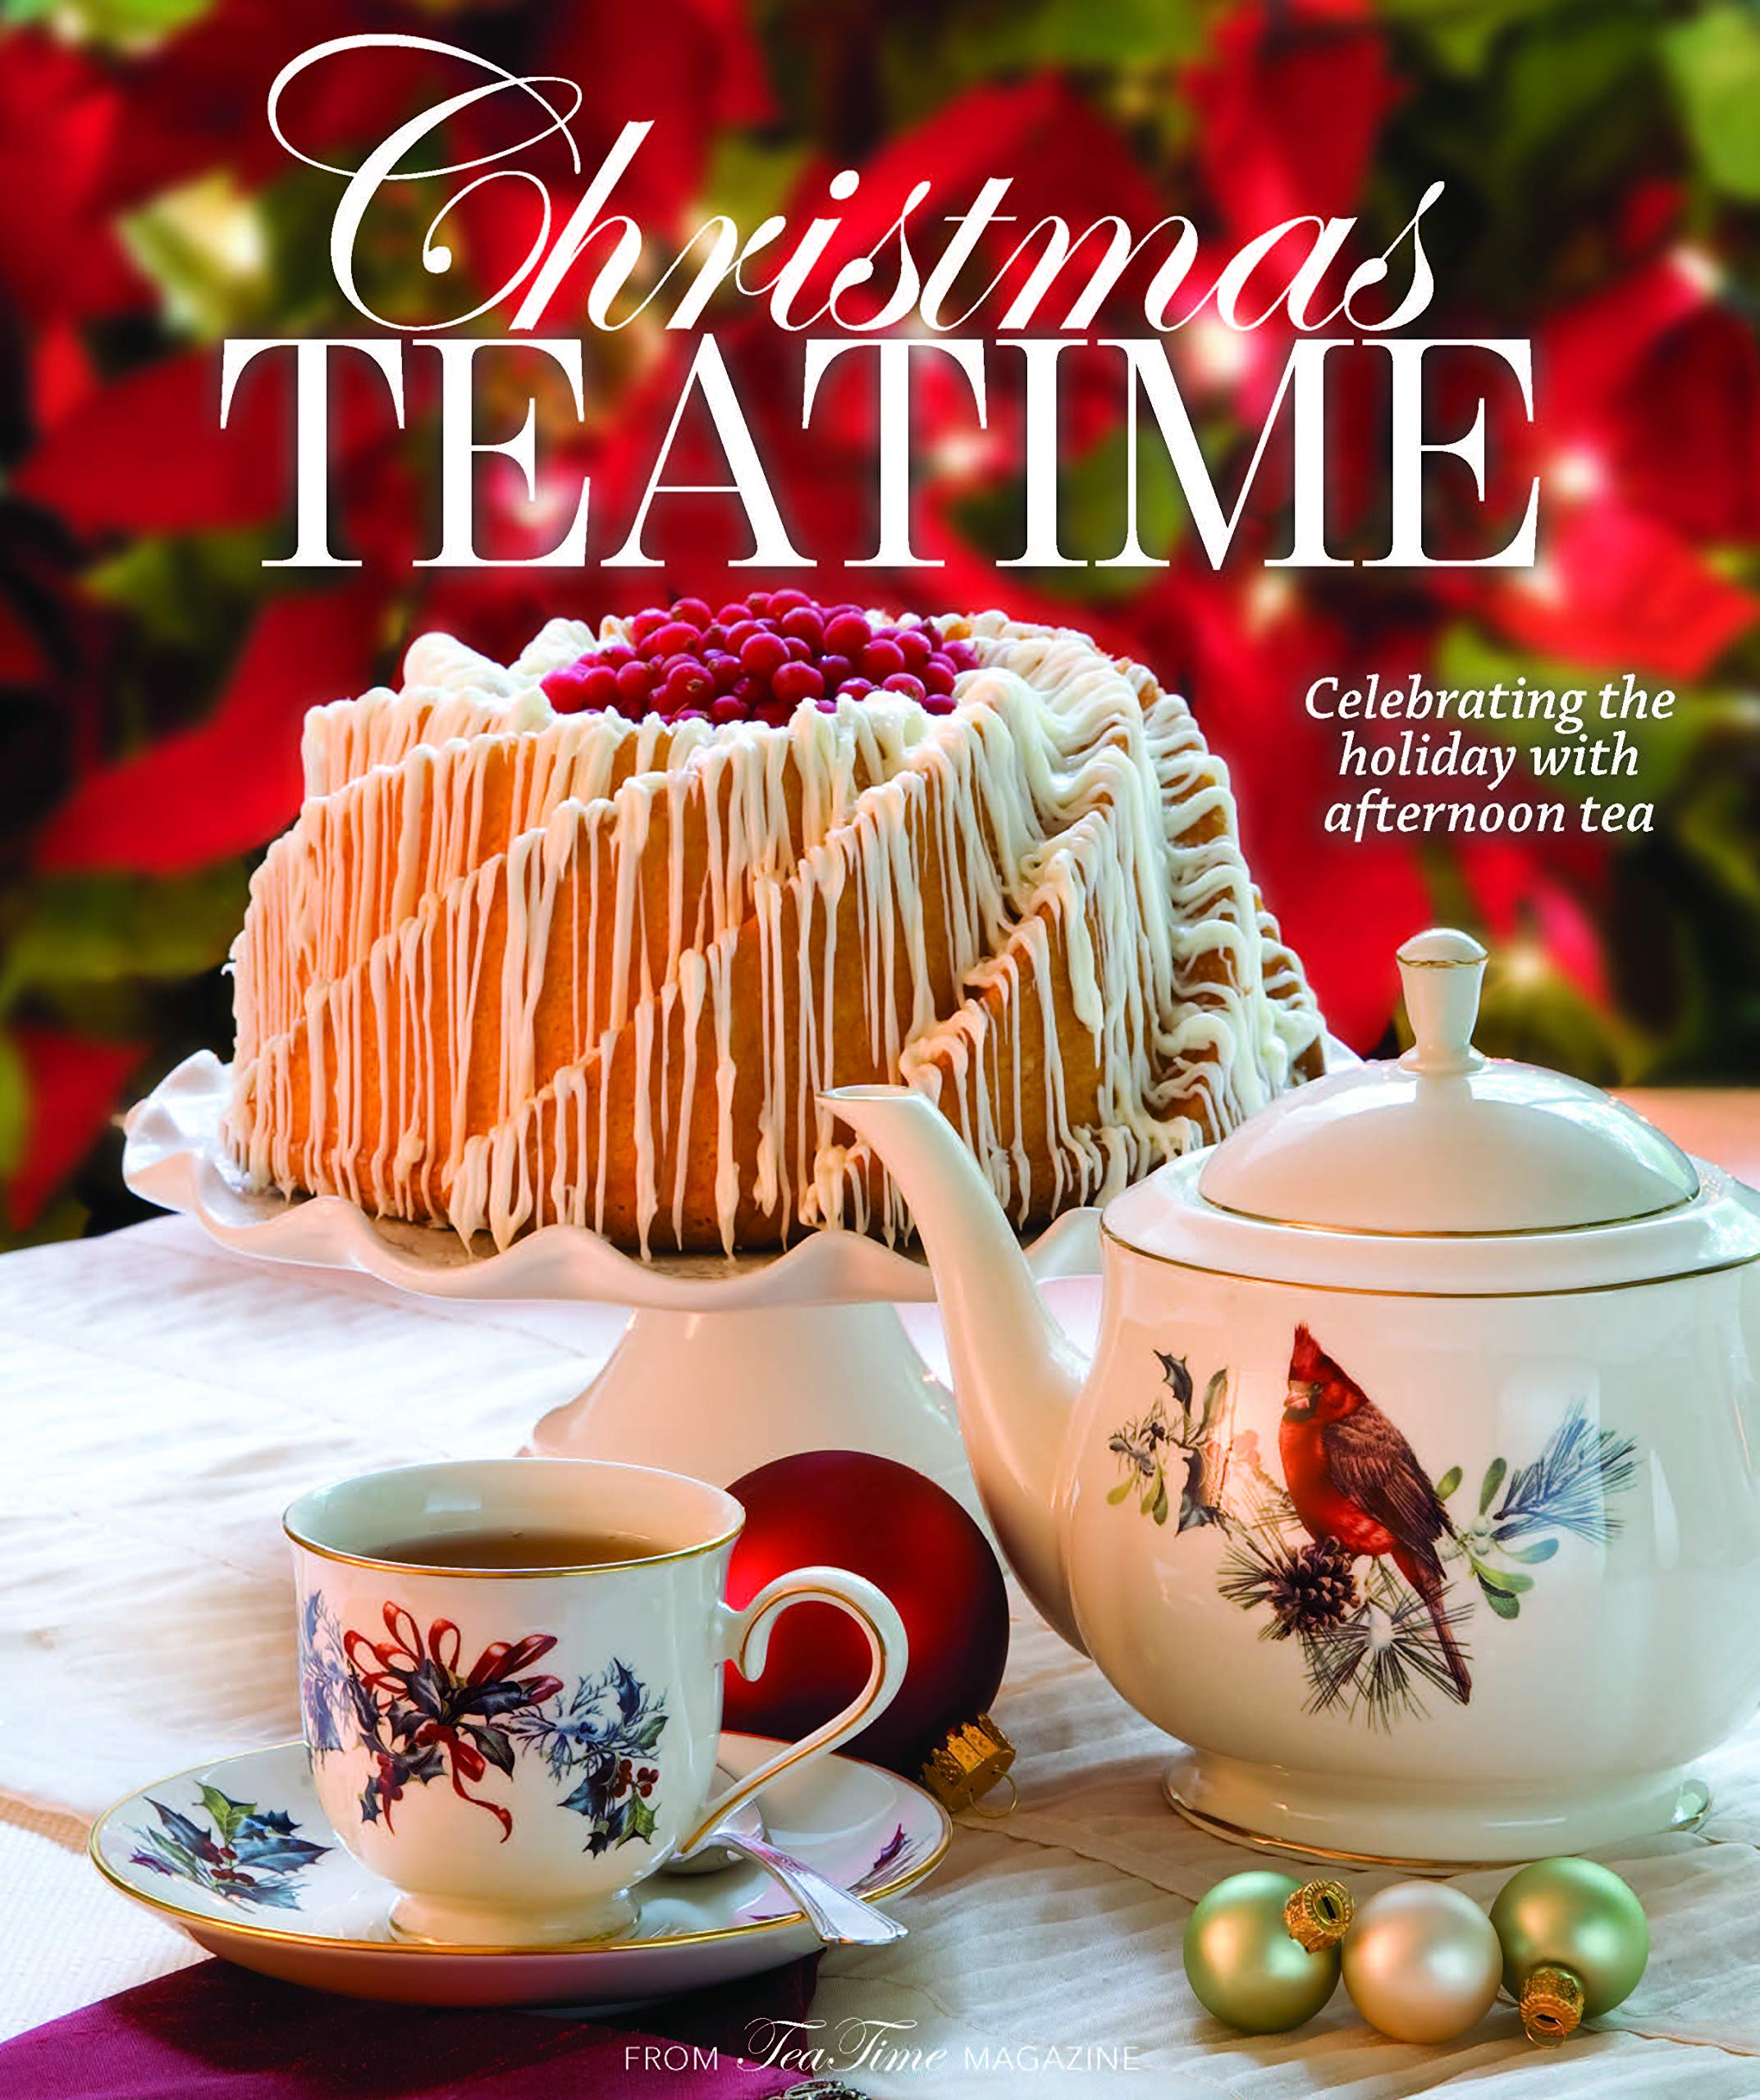 Image OfChristmas Teatime: Celebrating The Holiday With Afternoon Tea